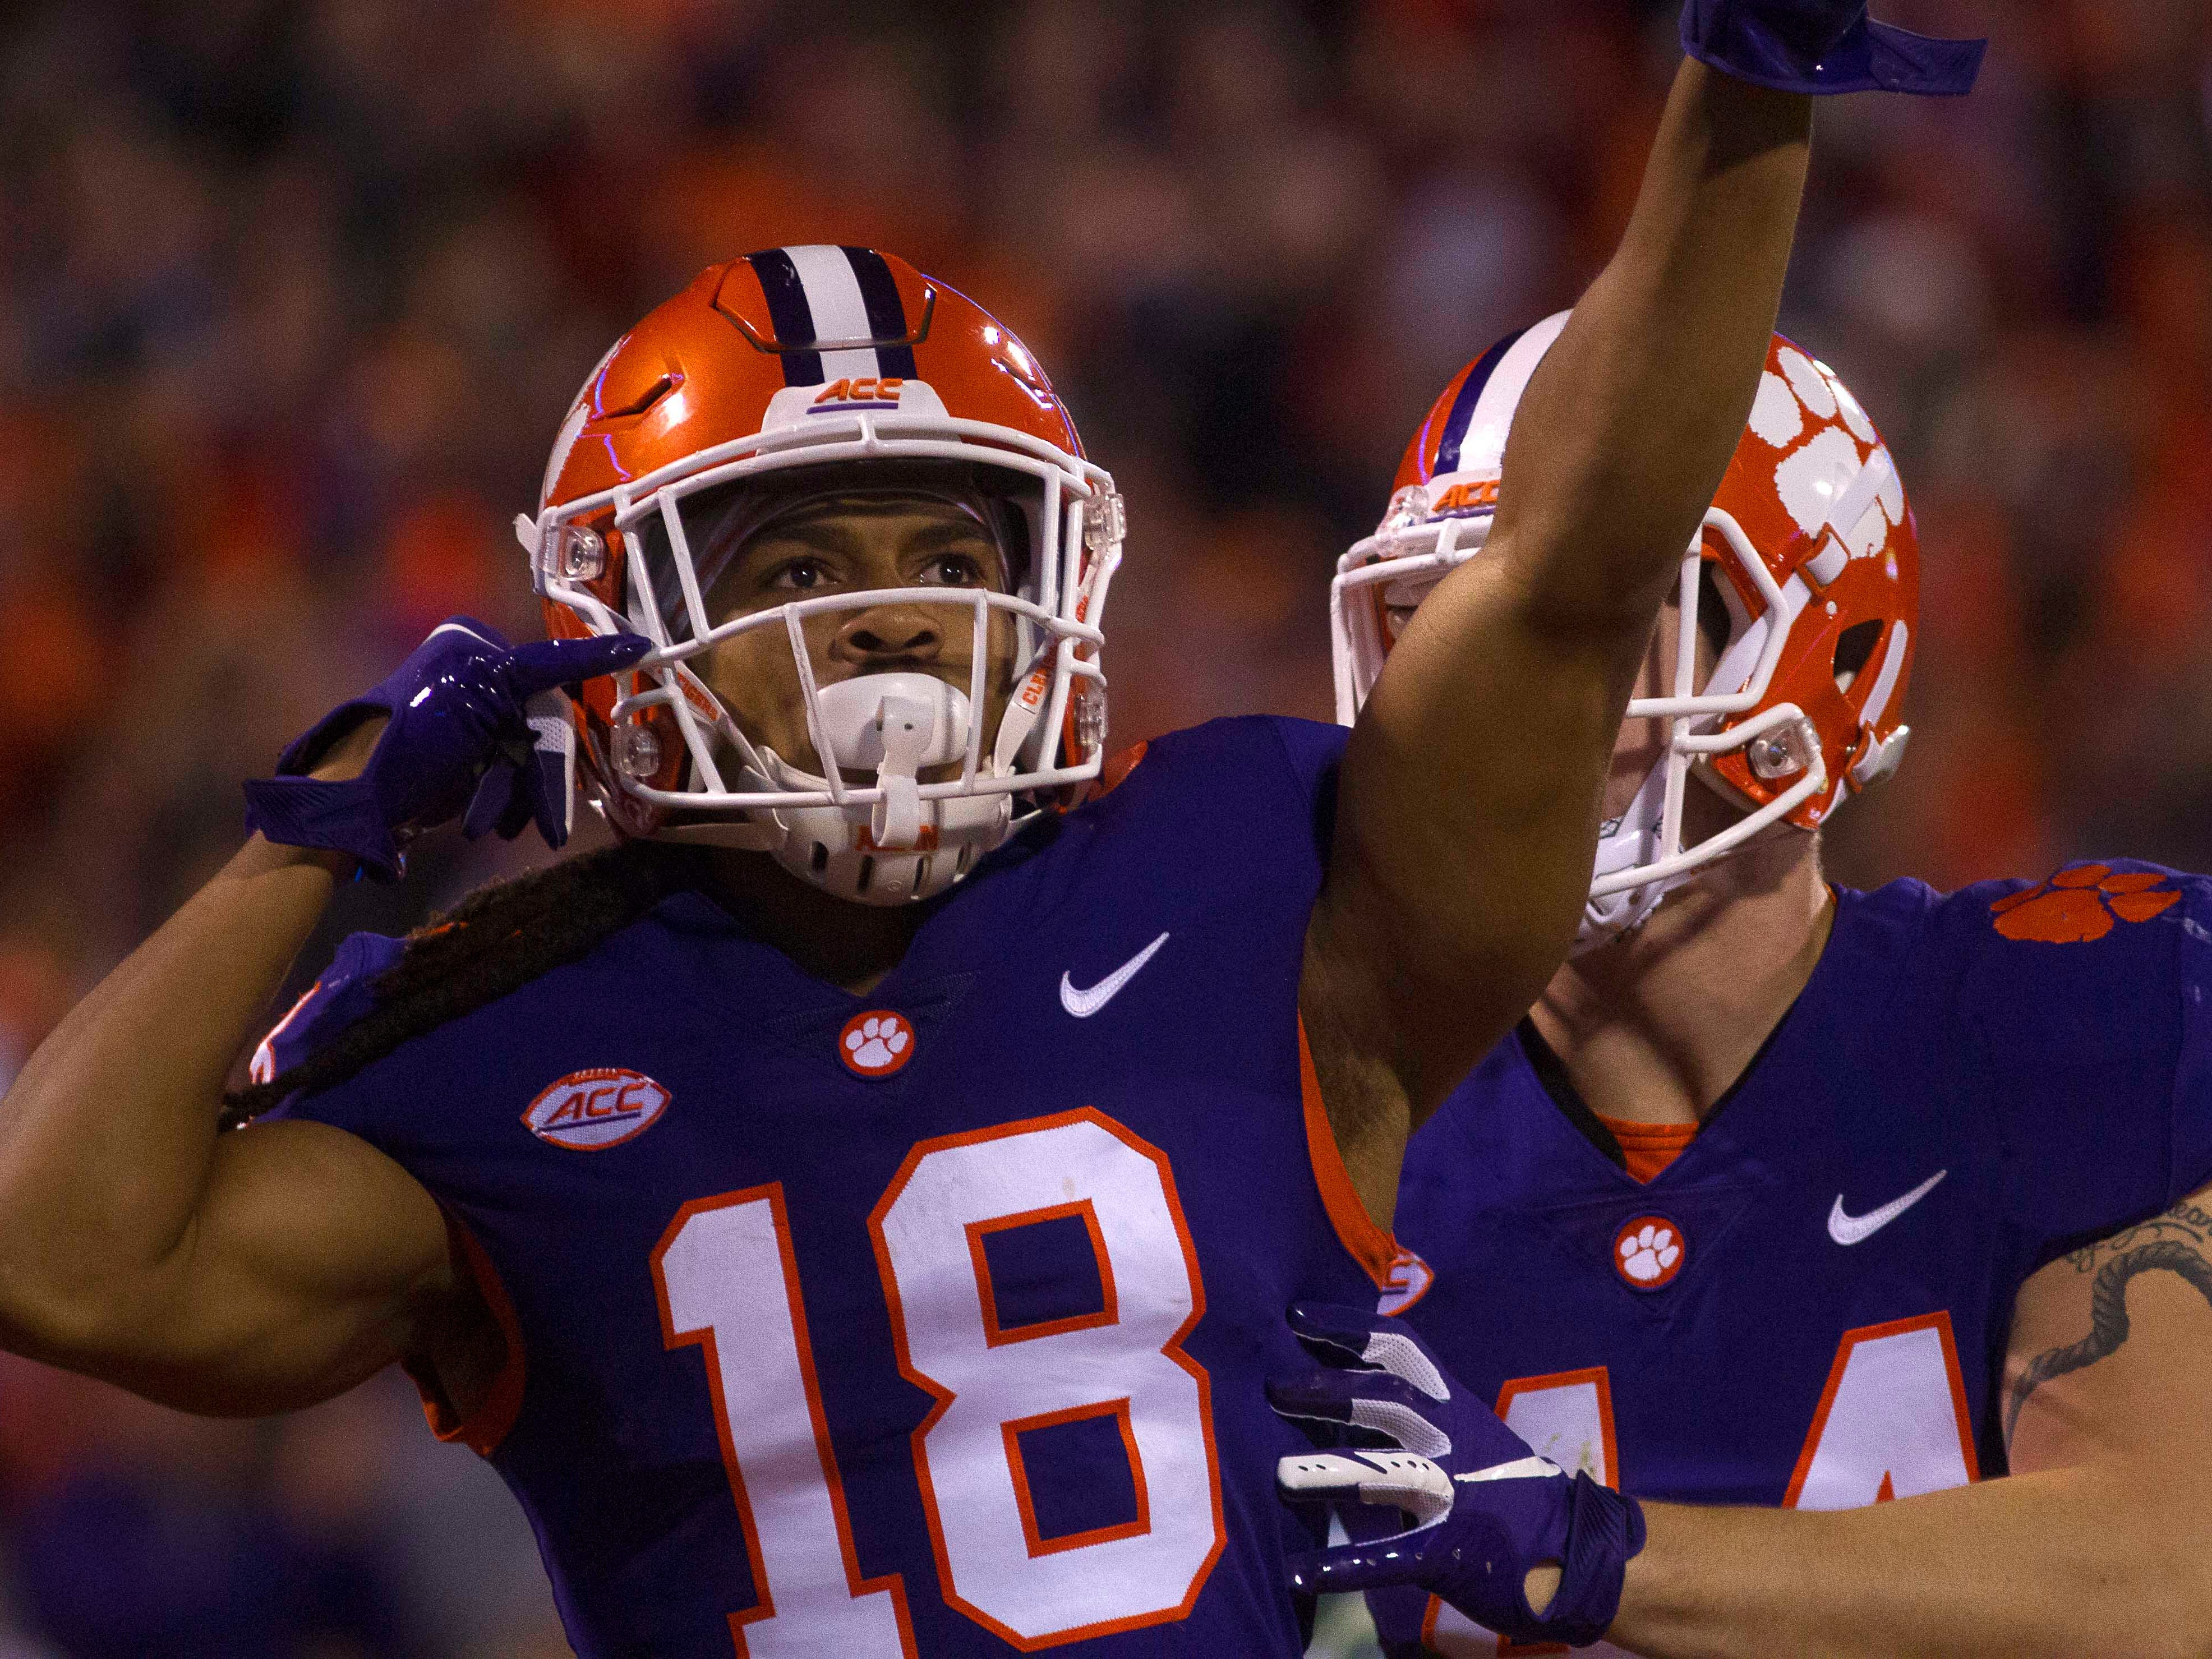 2. Clemson (11-0) | Last game: Defeated Duke, 35-6 | Previous ranking: 2